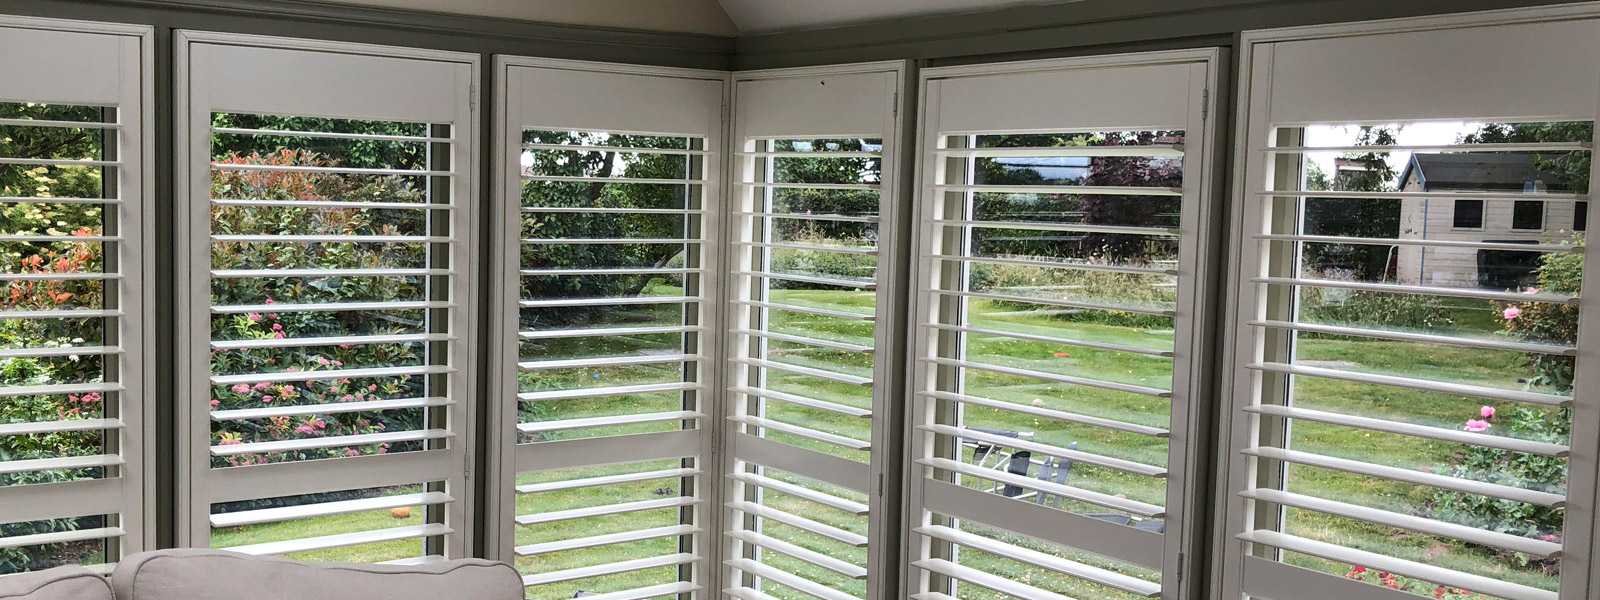 Conservatory Shutters Installation Wrexham North Wales